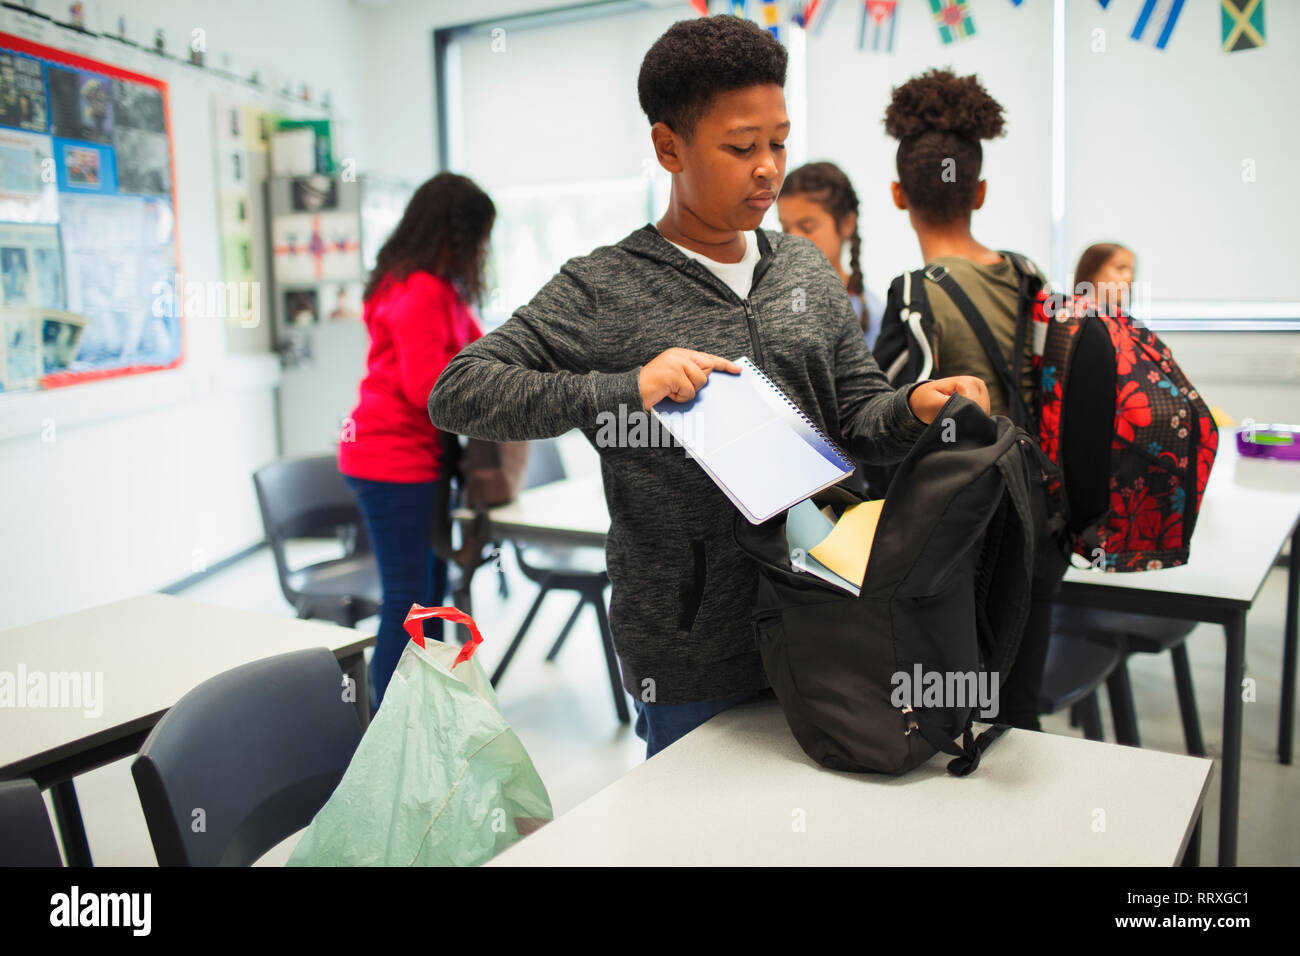 Junior high school boy placing notebook in backpack in classroom Stock Photo